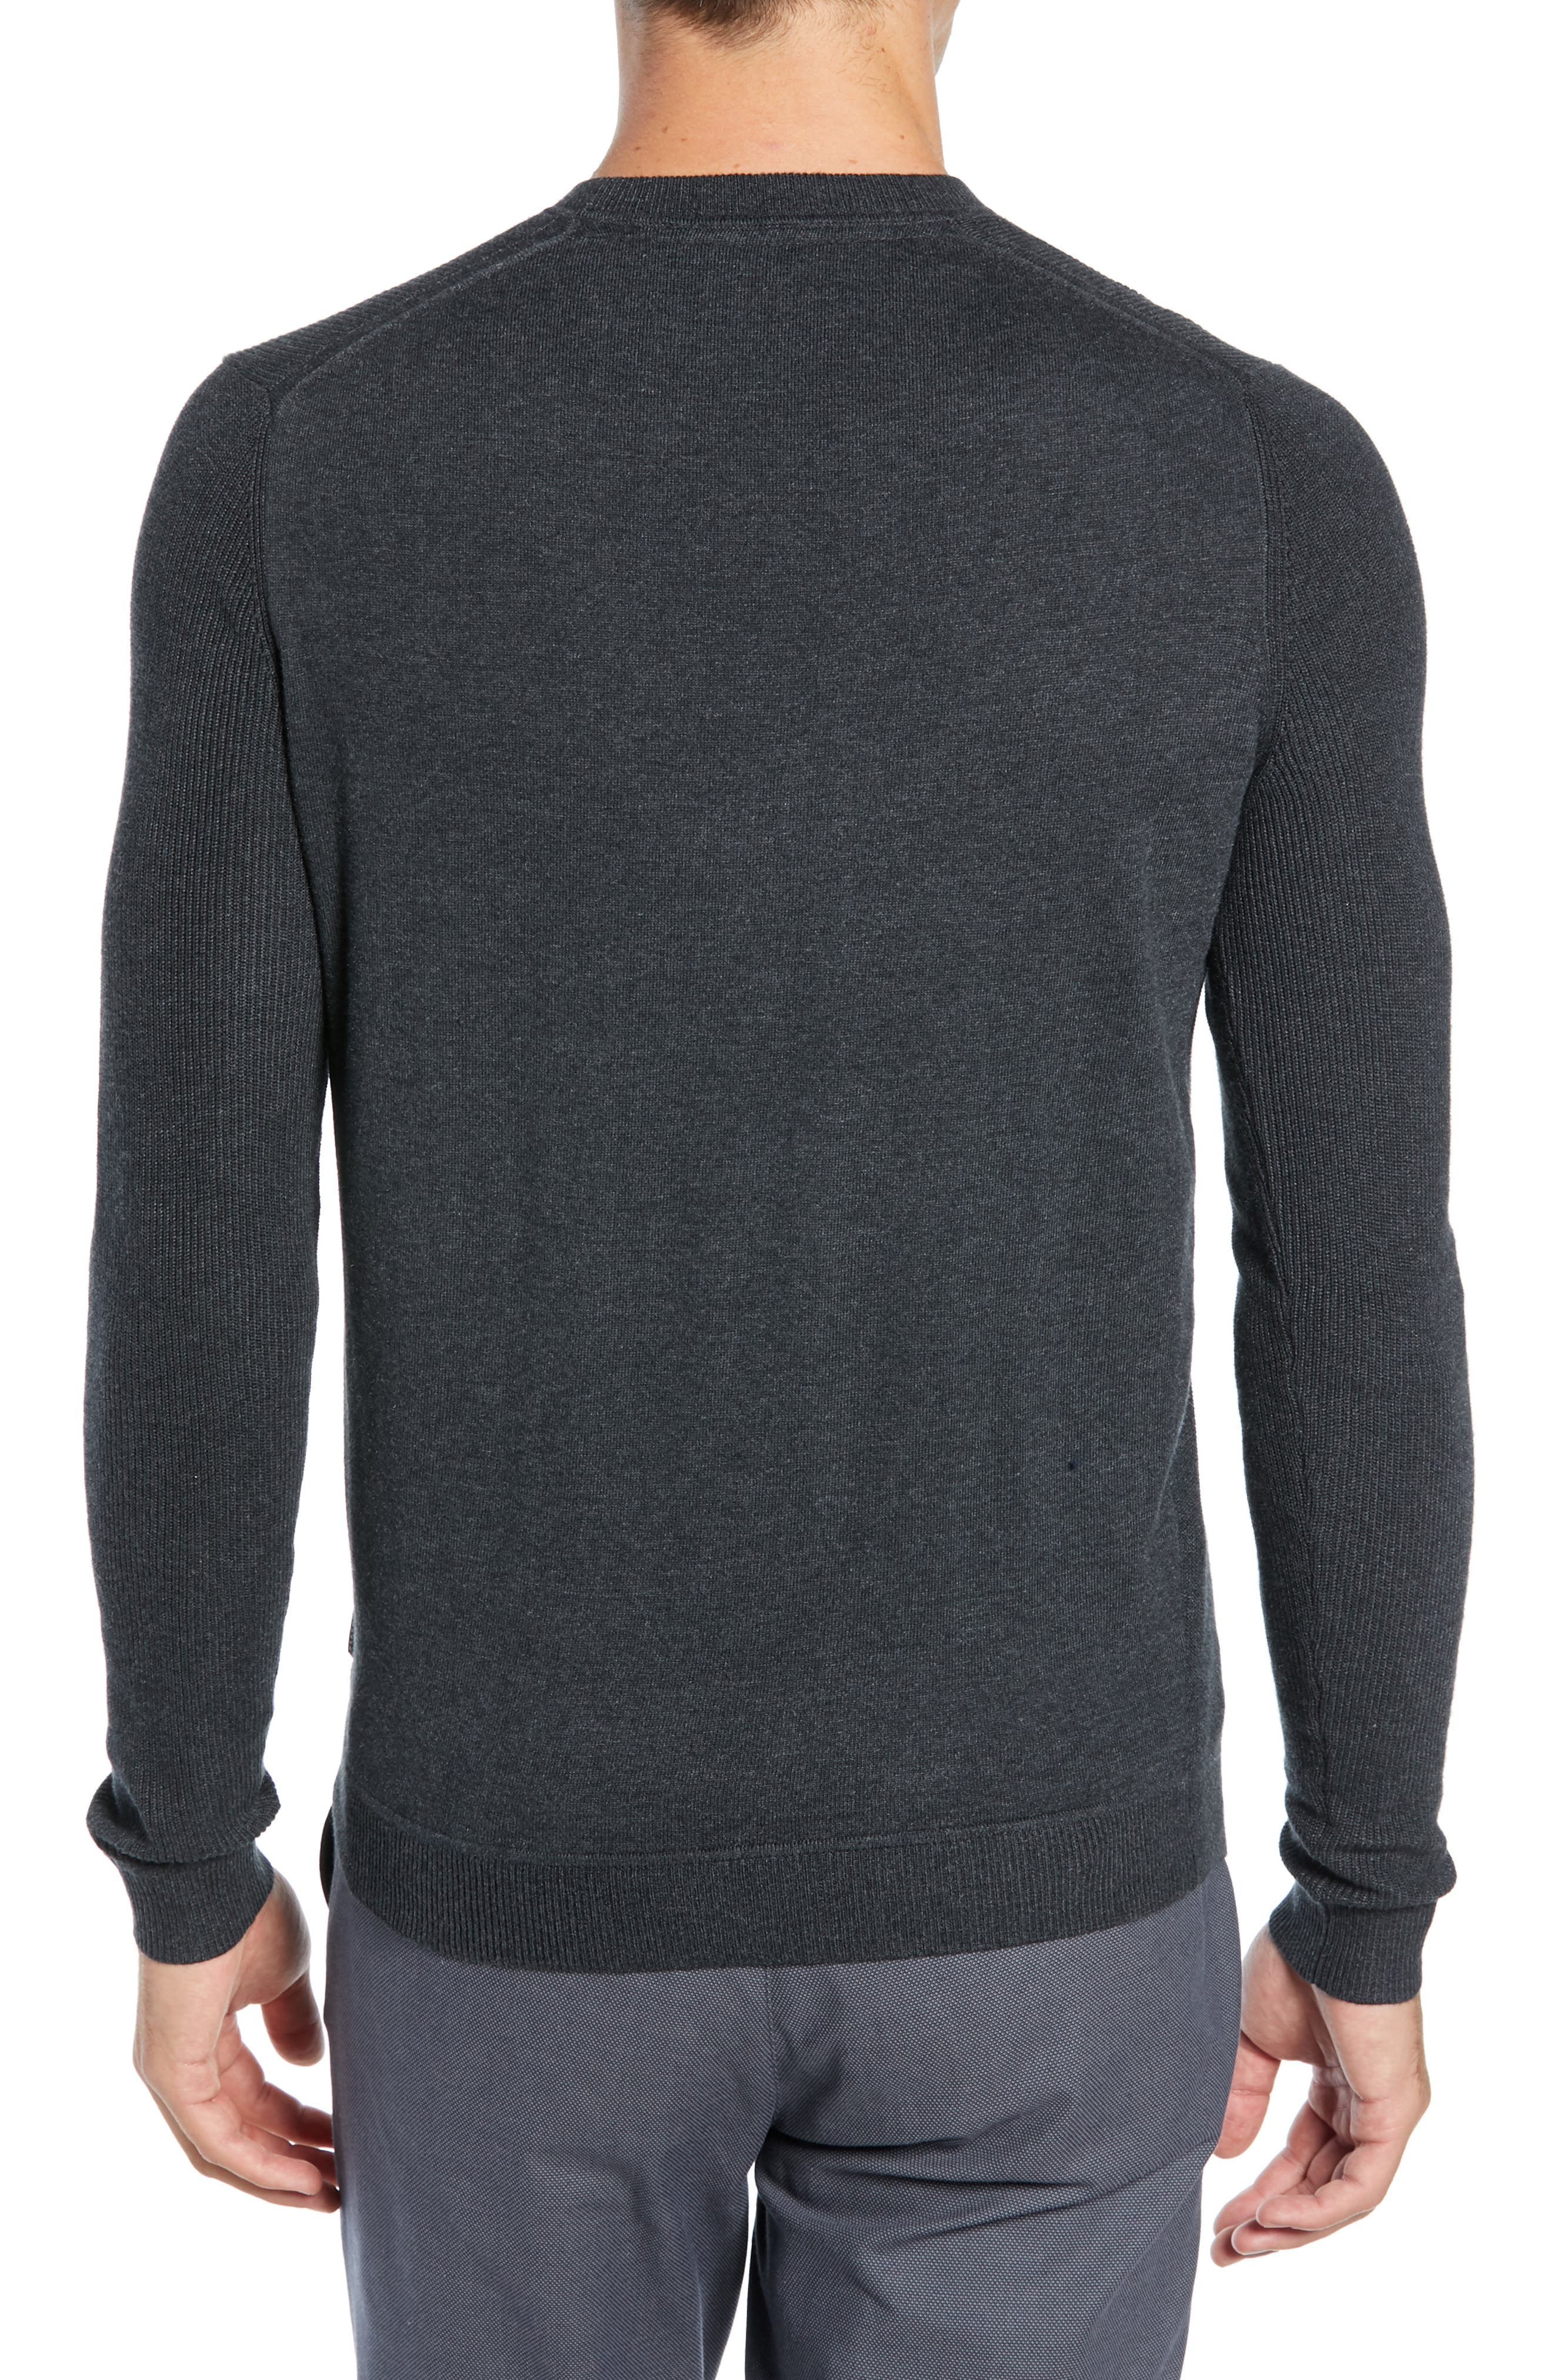 Reversy Slim Fit Crewneck Long Sleeve T-Shirt,                             Alternate thumbnail 2, color,                             CHARCOAL